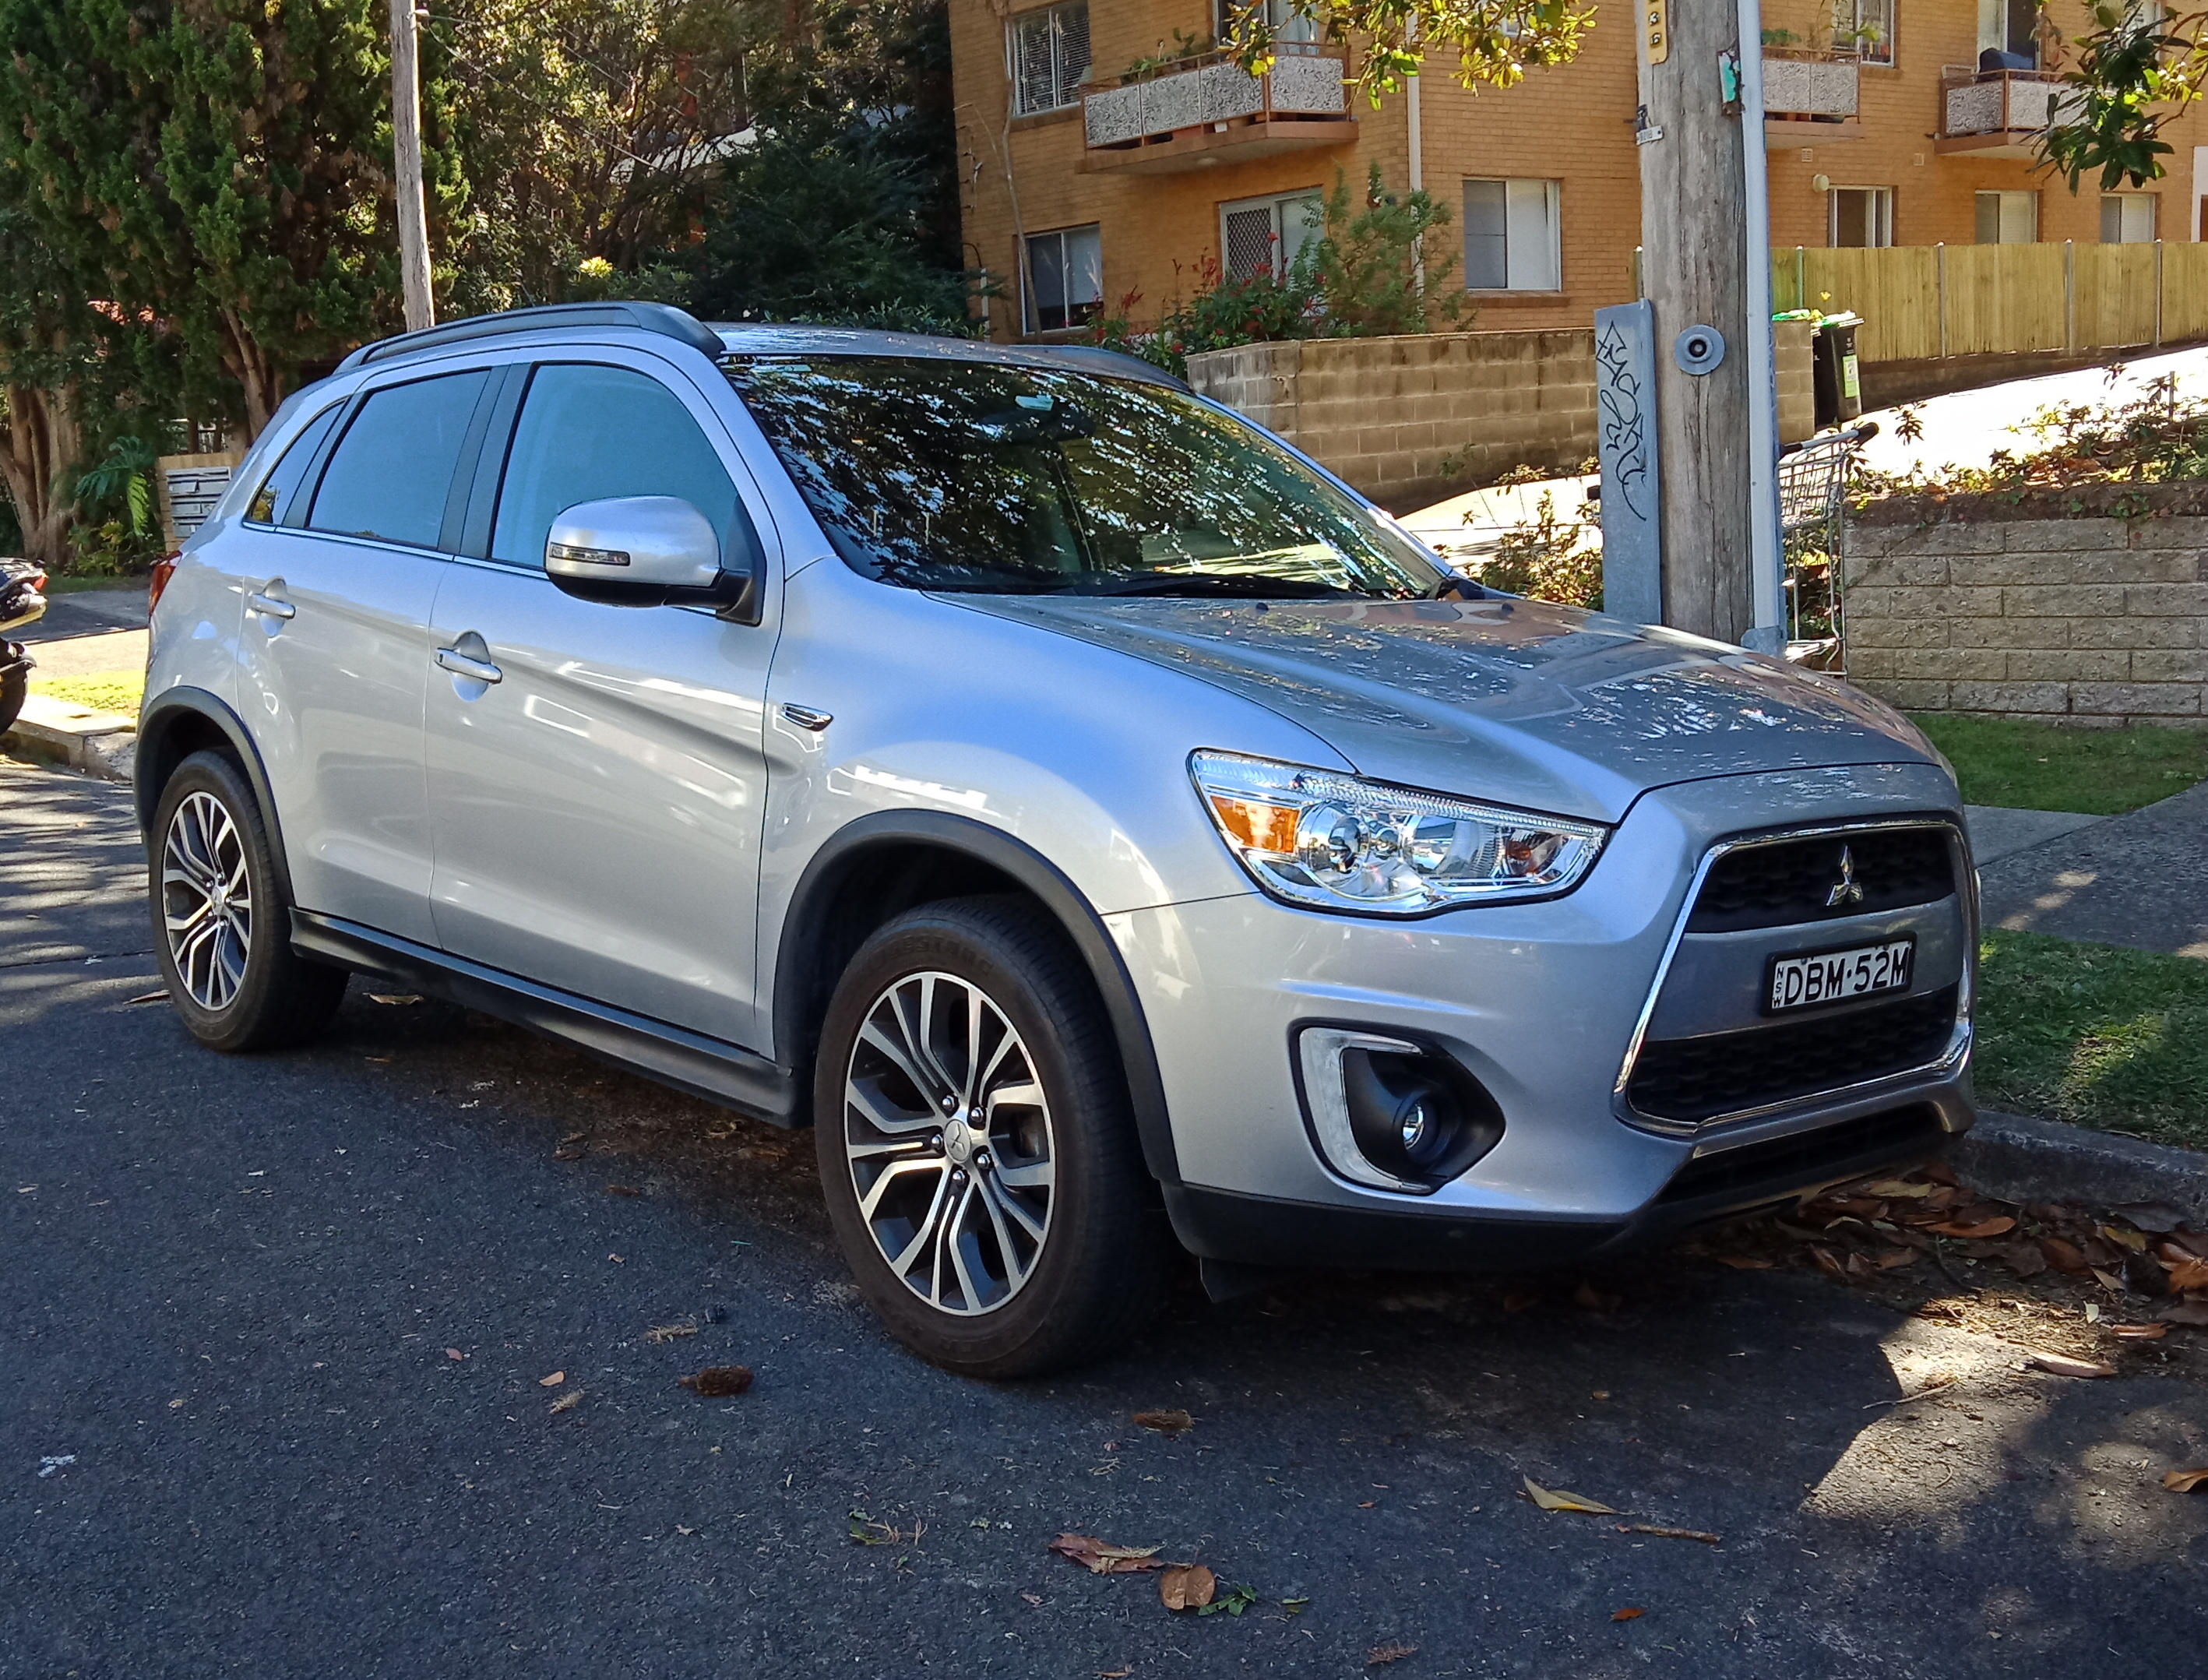 Picture of Paolo's 2015 Mitsubishi ASX